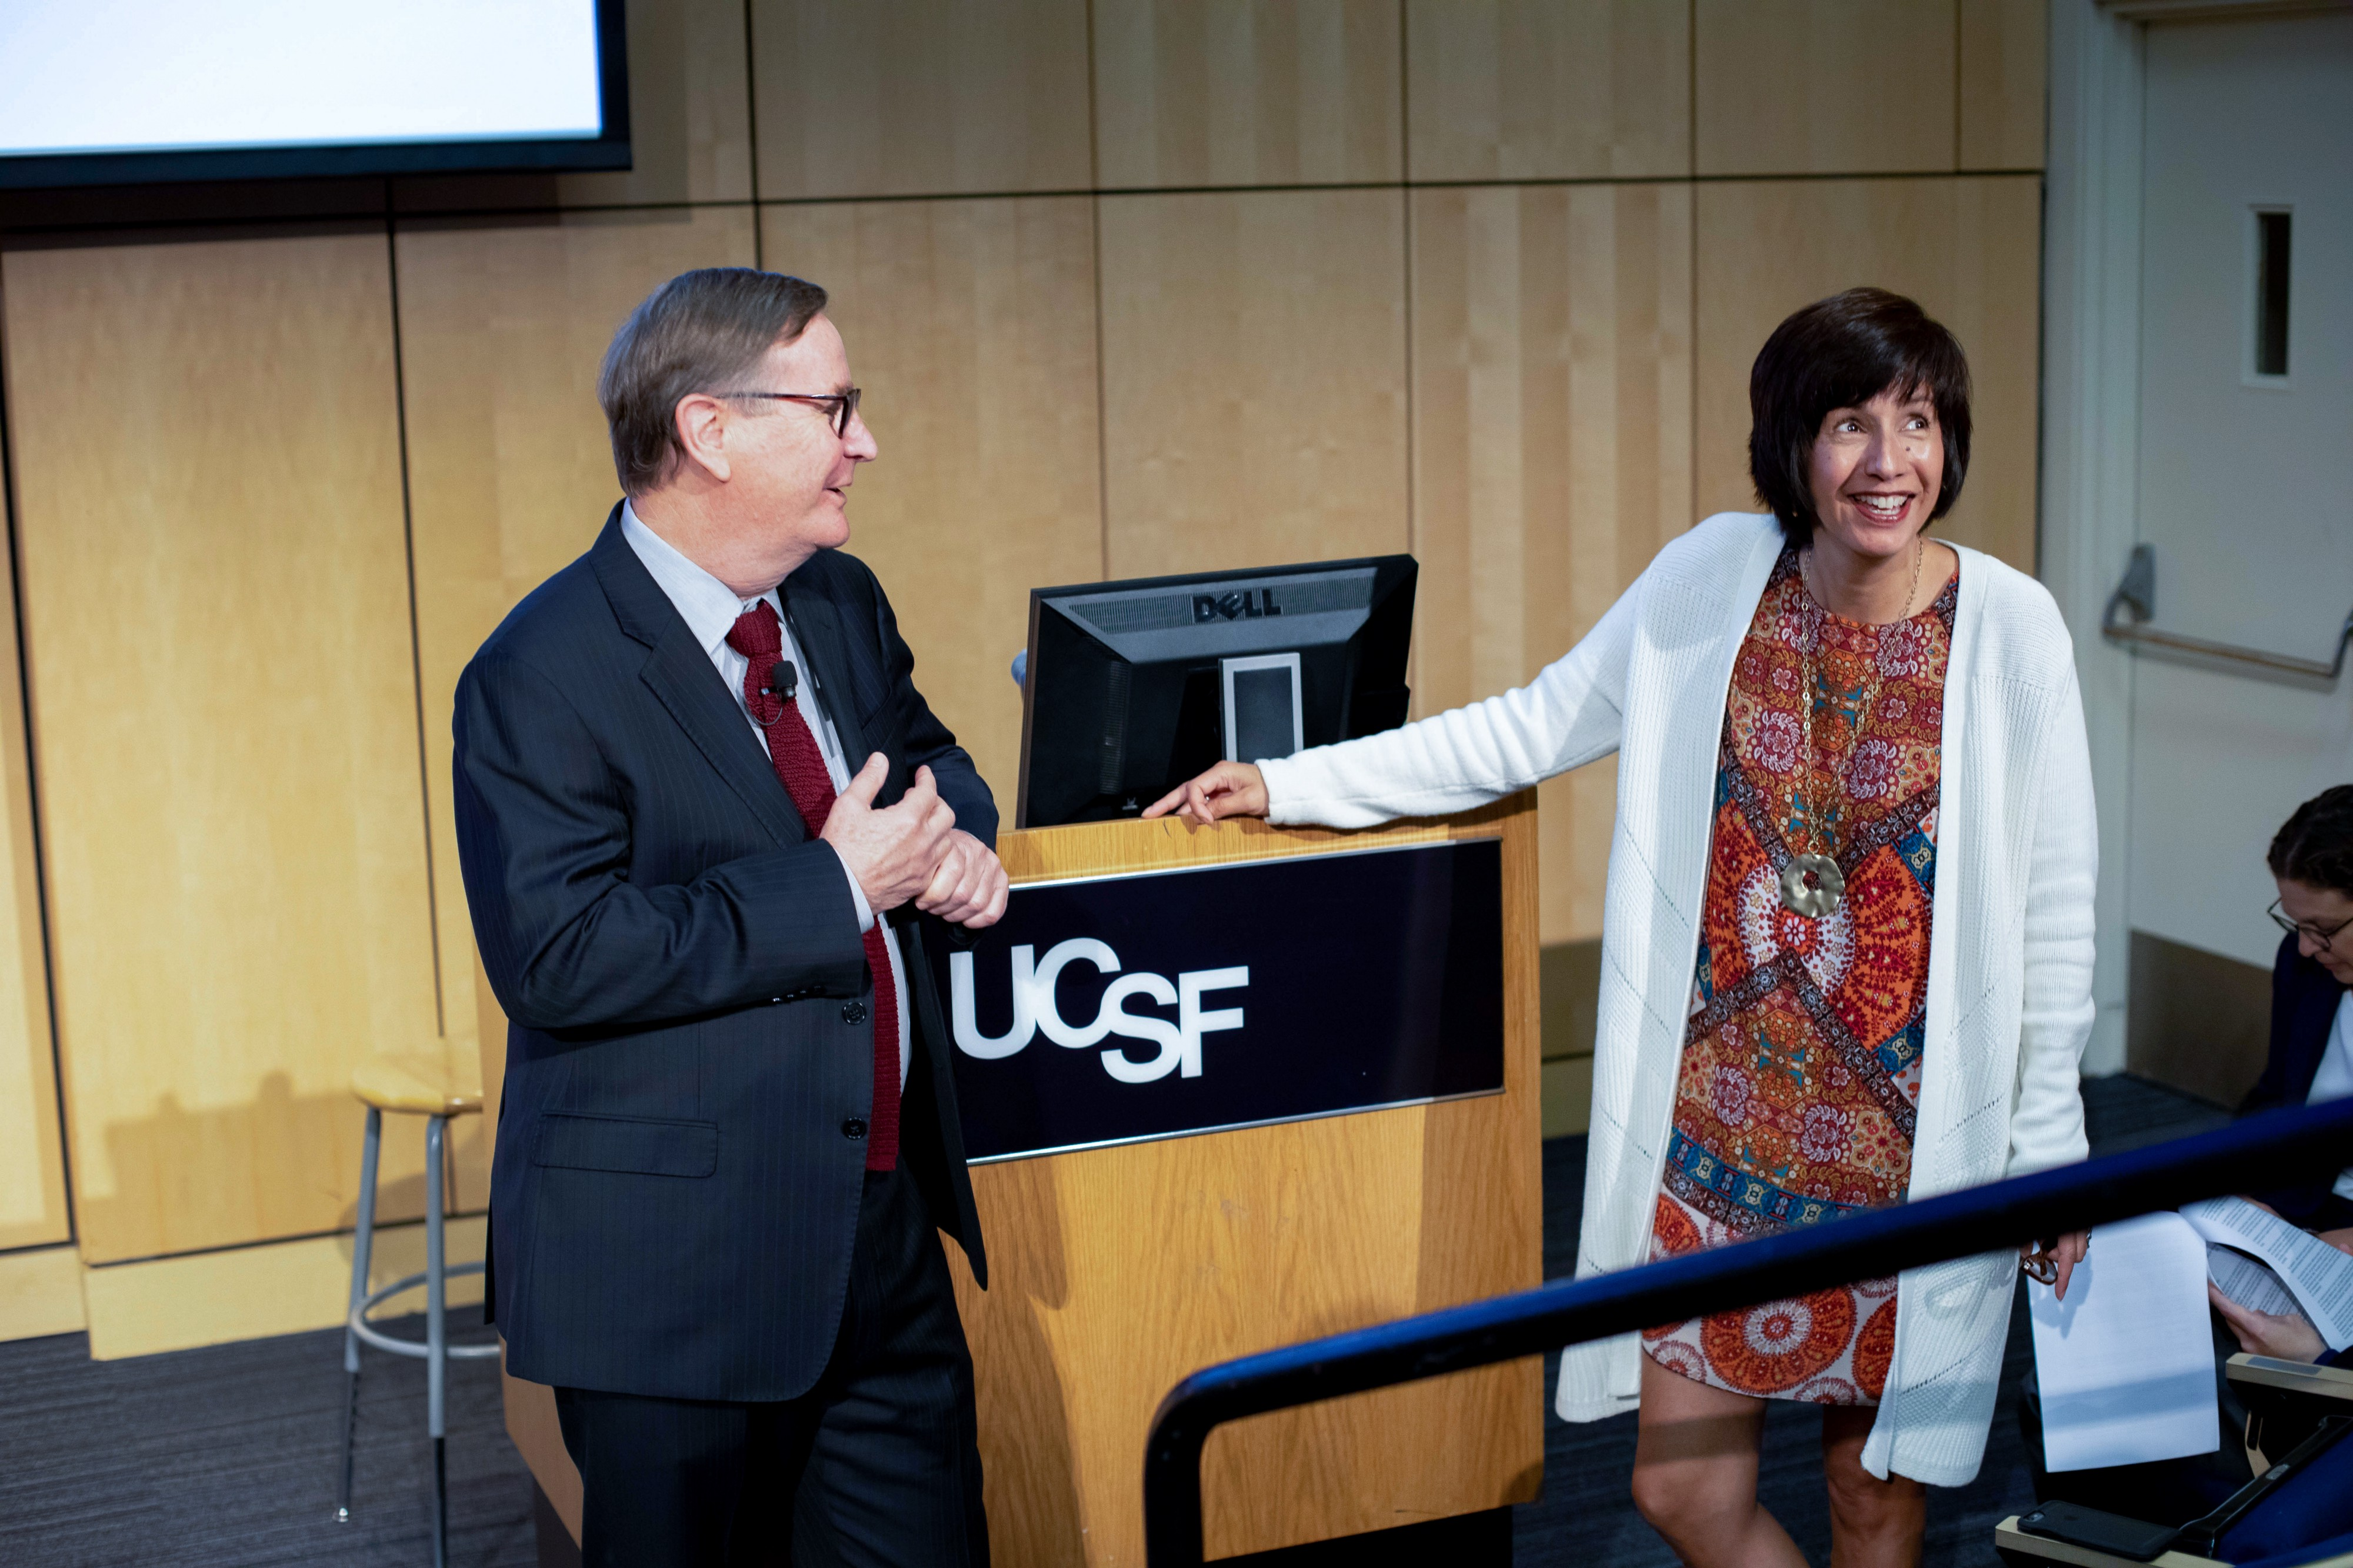 UCSF Women Reflect on Gender, Work and Science - UC San